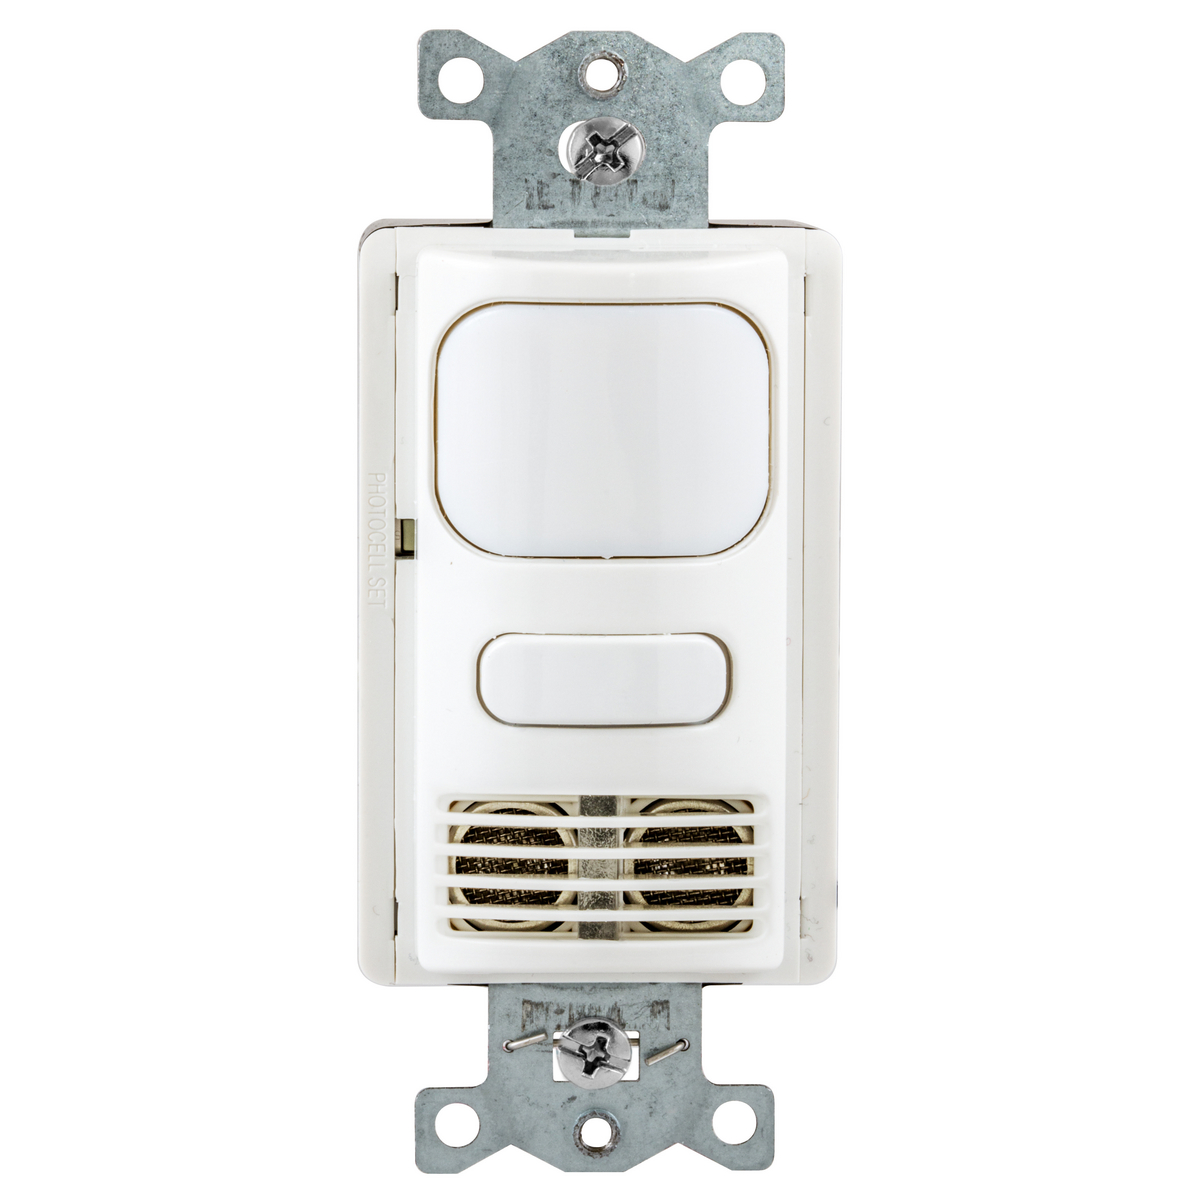 hubw ad2000w1 redirect to product page